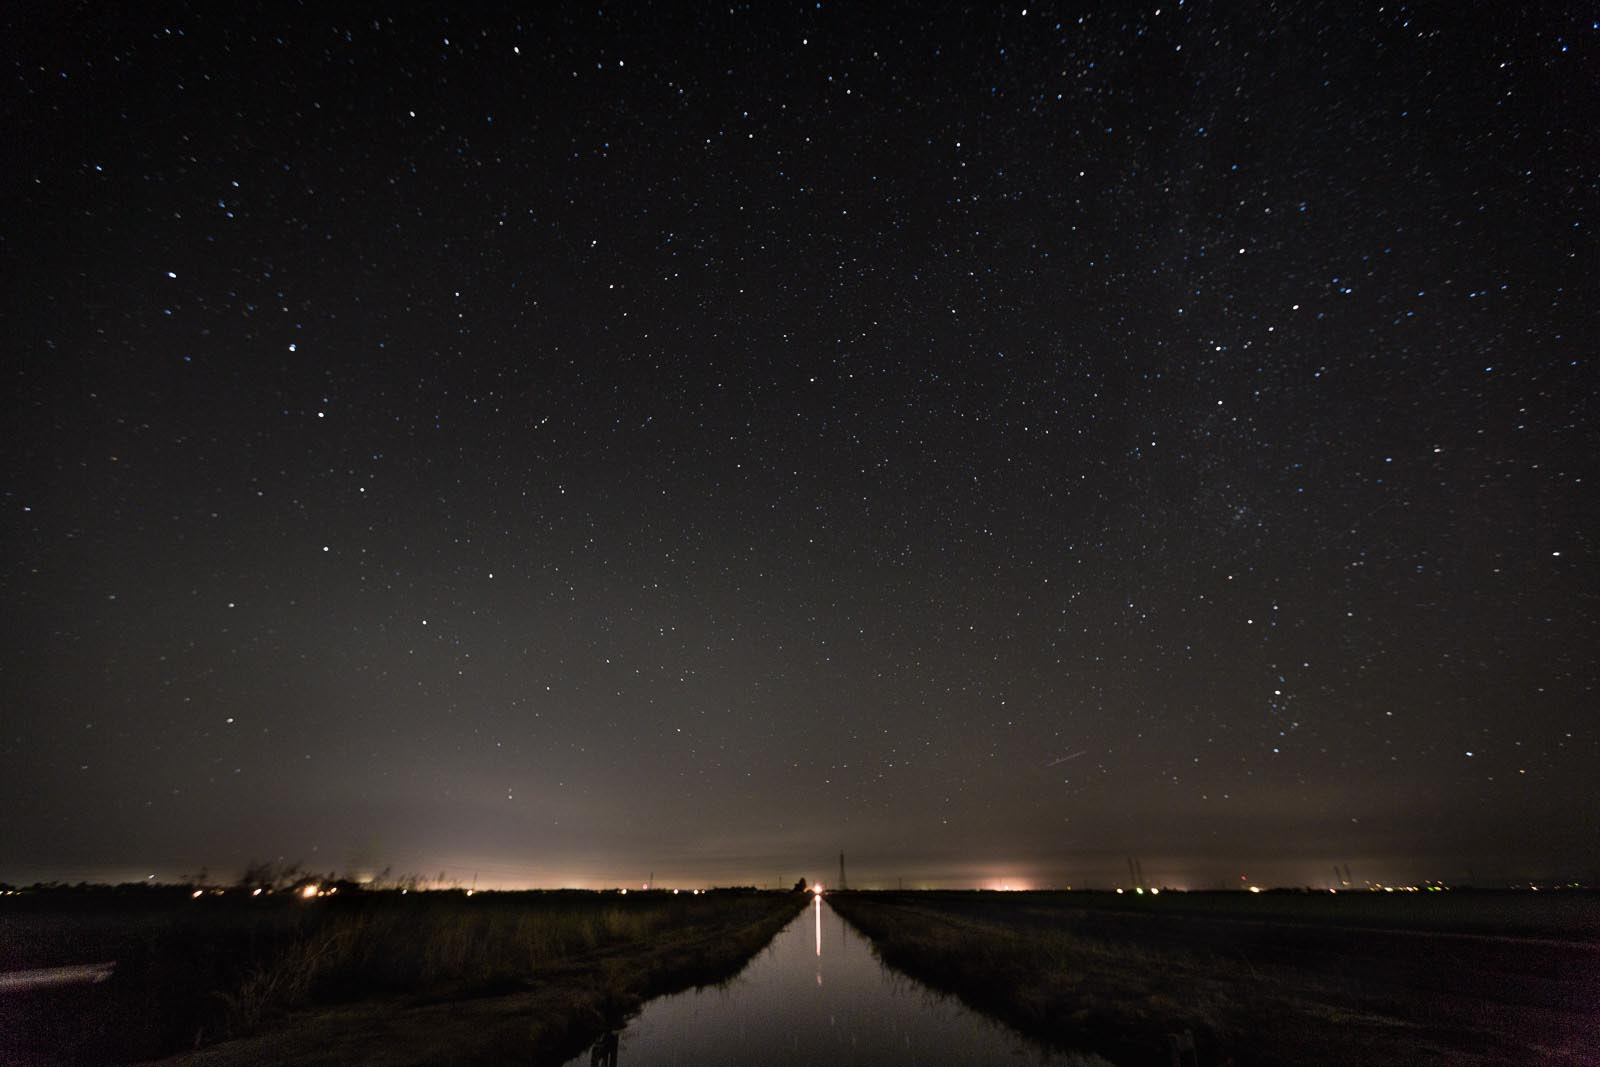 Stars on the horizon during a night photography session